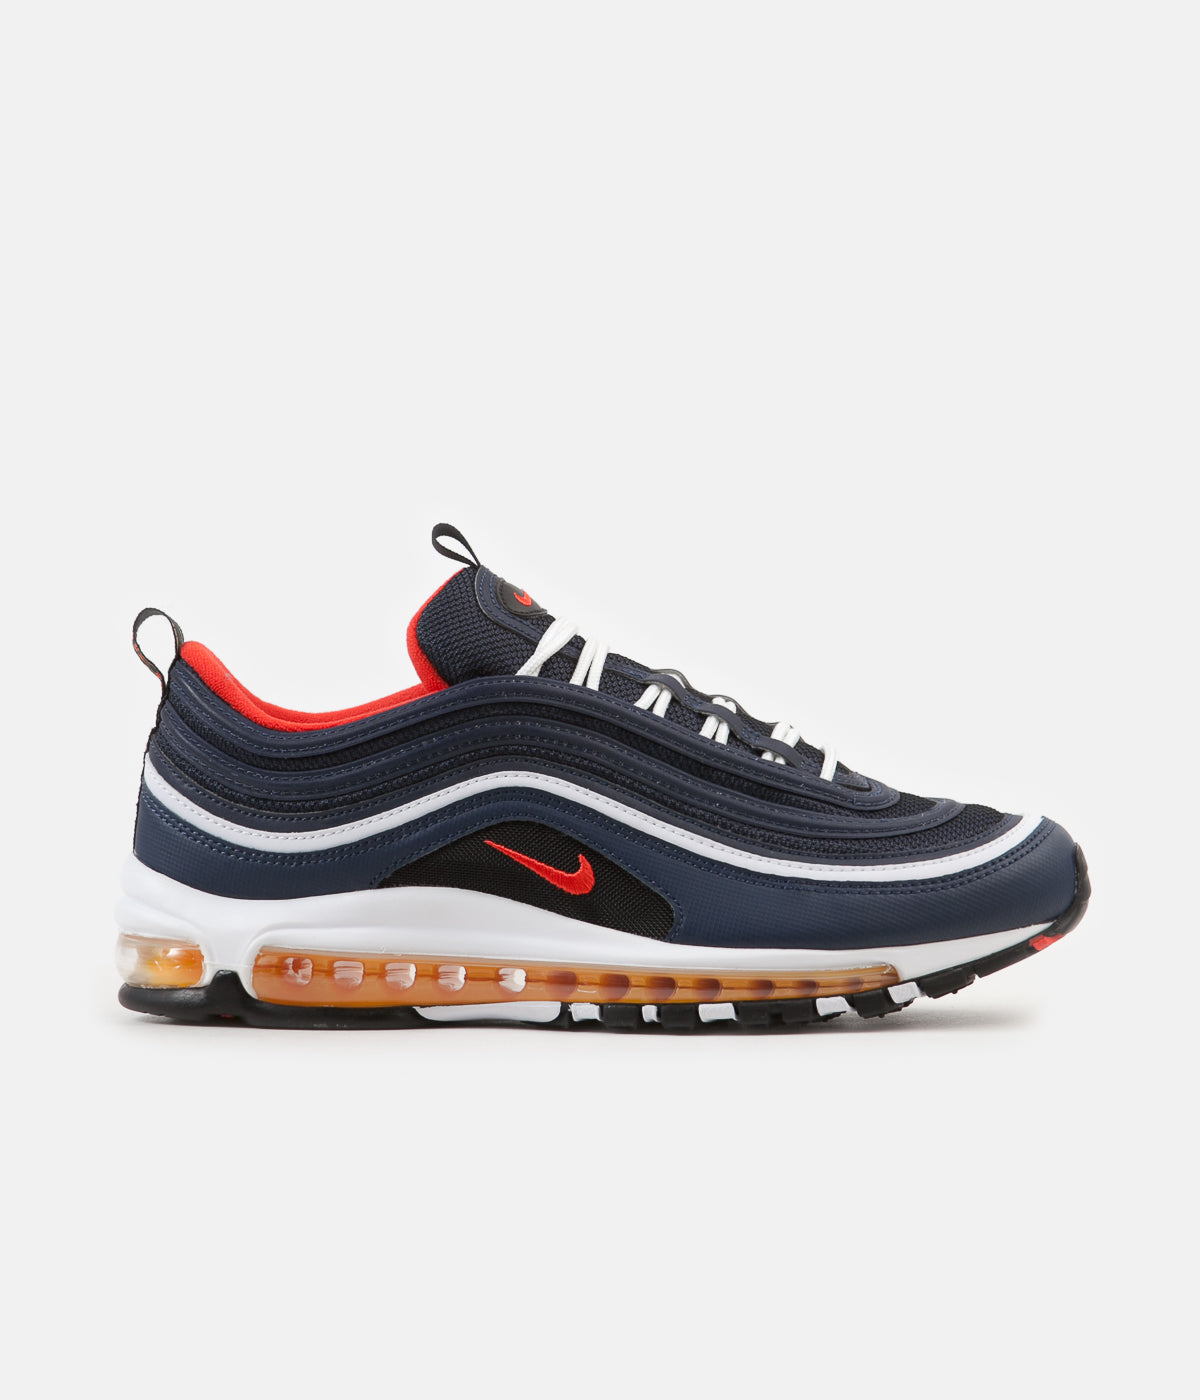 detailed look 14453 a62a2 Nike Air Max 97 Shoes - Midnight Navy / Habanero Red - Black ...